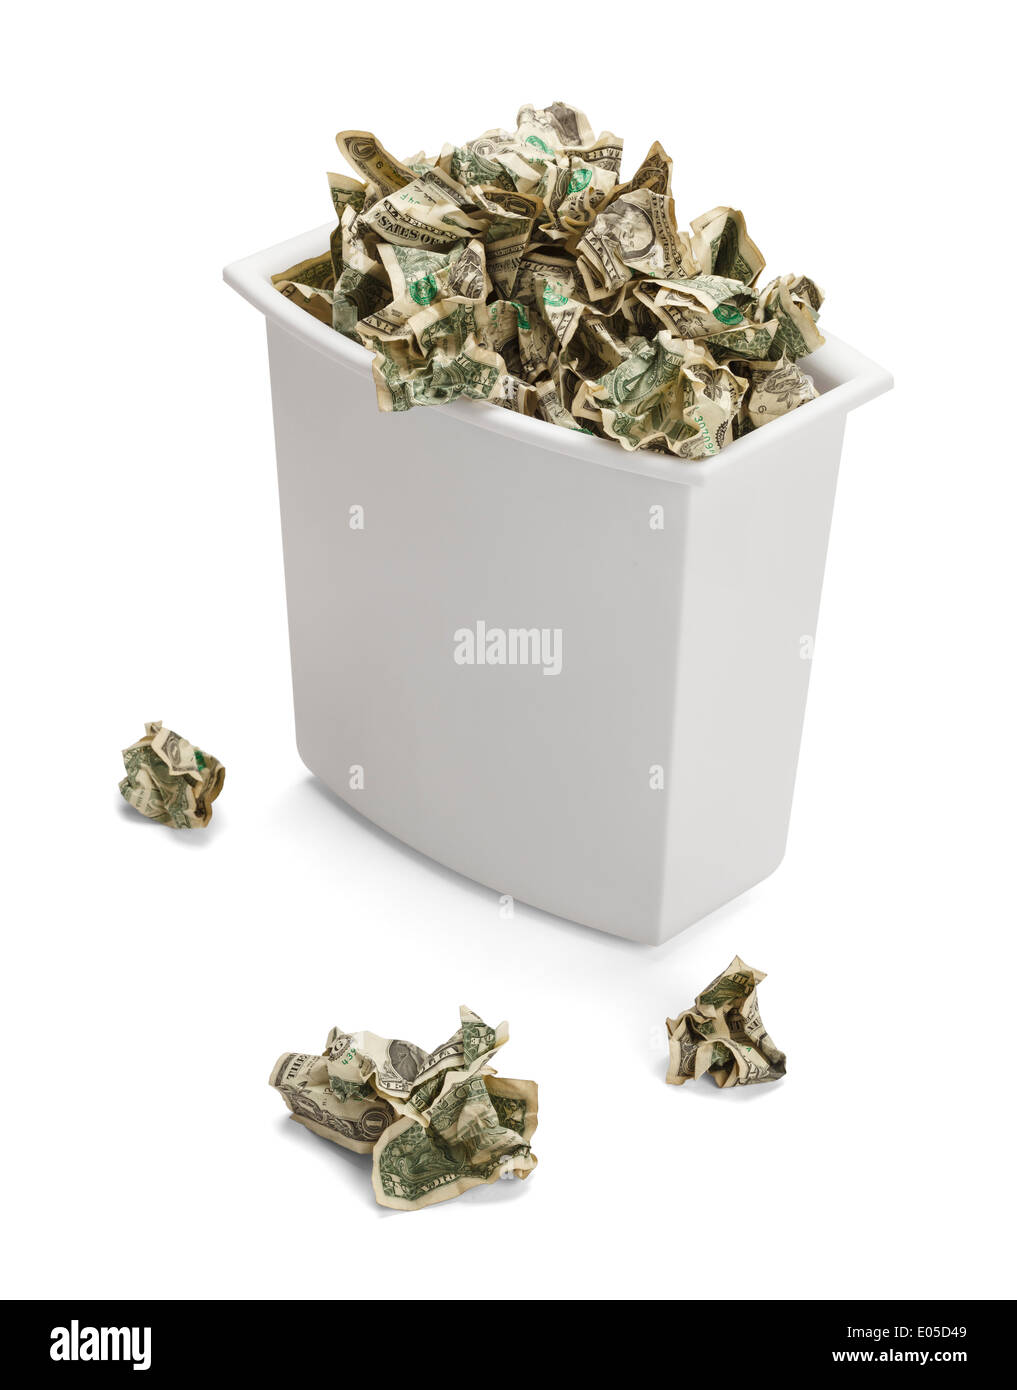 Trash Can full of Crumpled Dollars Over Flowing of Frustration. Isolated on a white background. - Stock Image